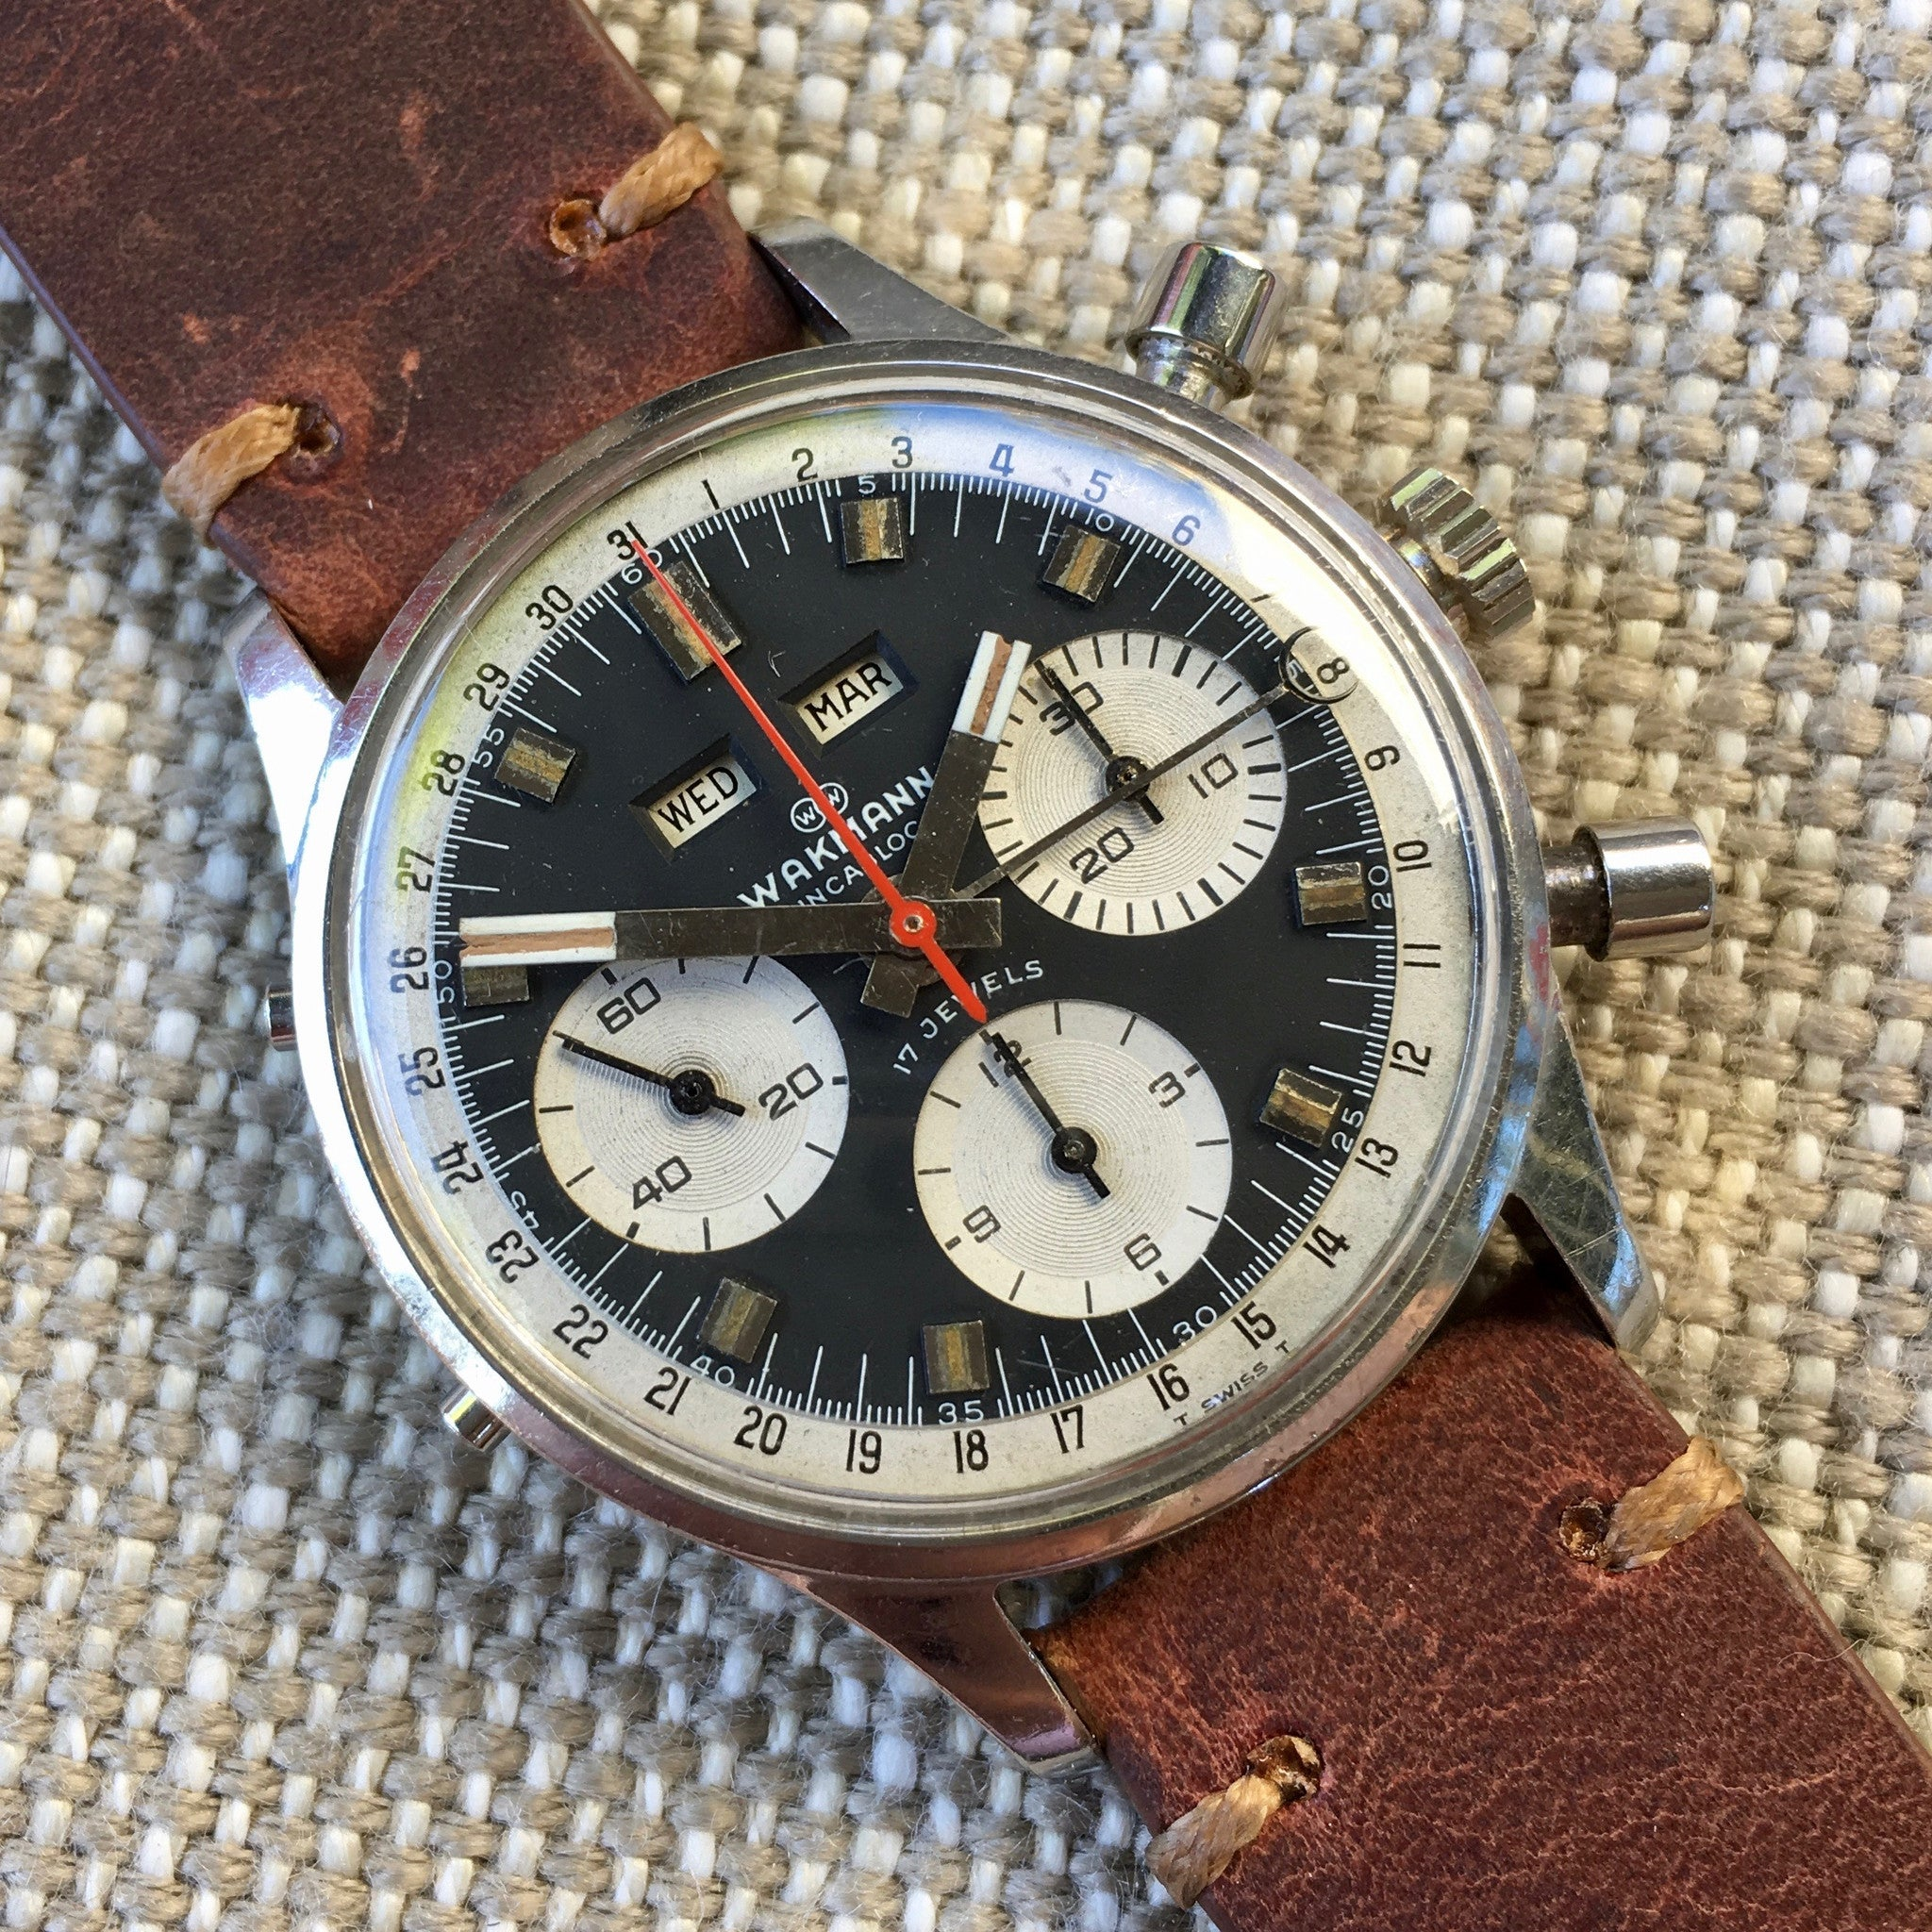 Vintage Wakmann Incabloc Steel Chronograph Triple Date 71.1309.70 Valjoux 730 Watch